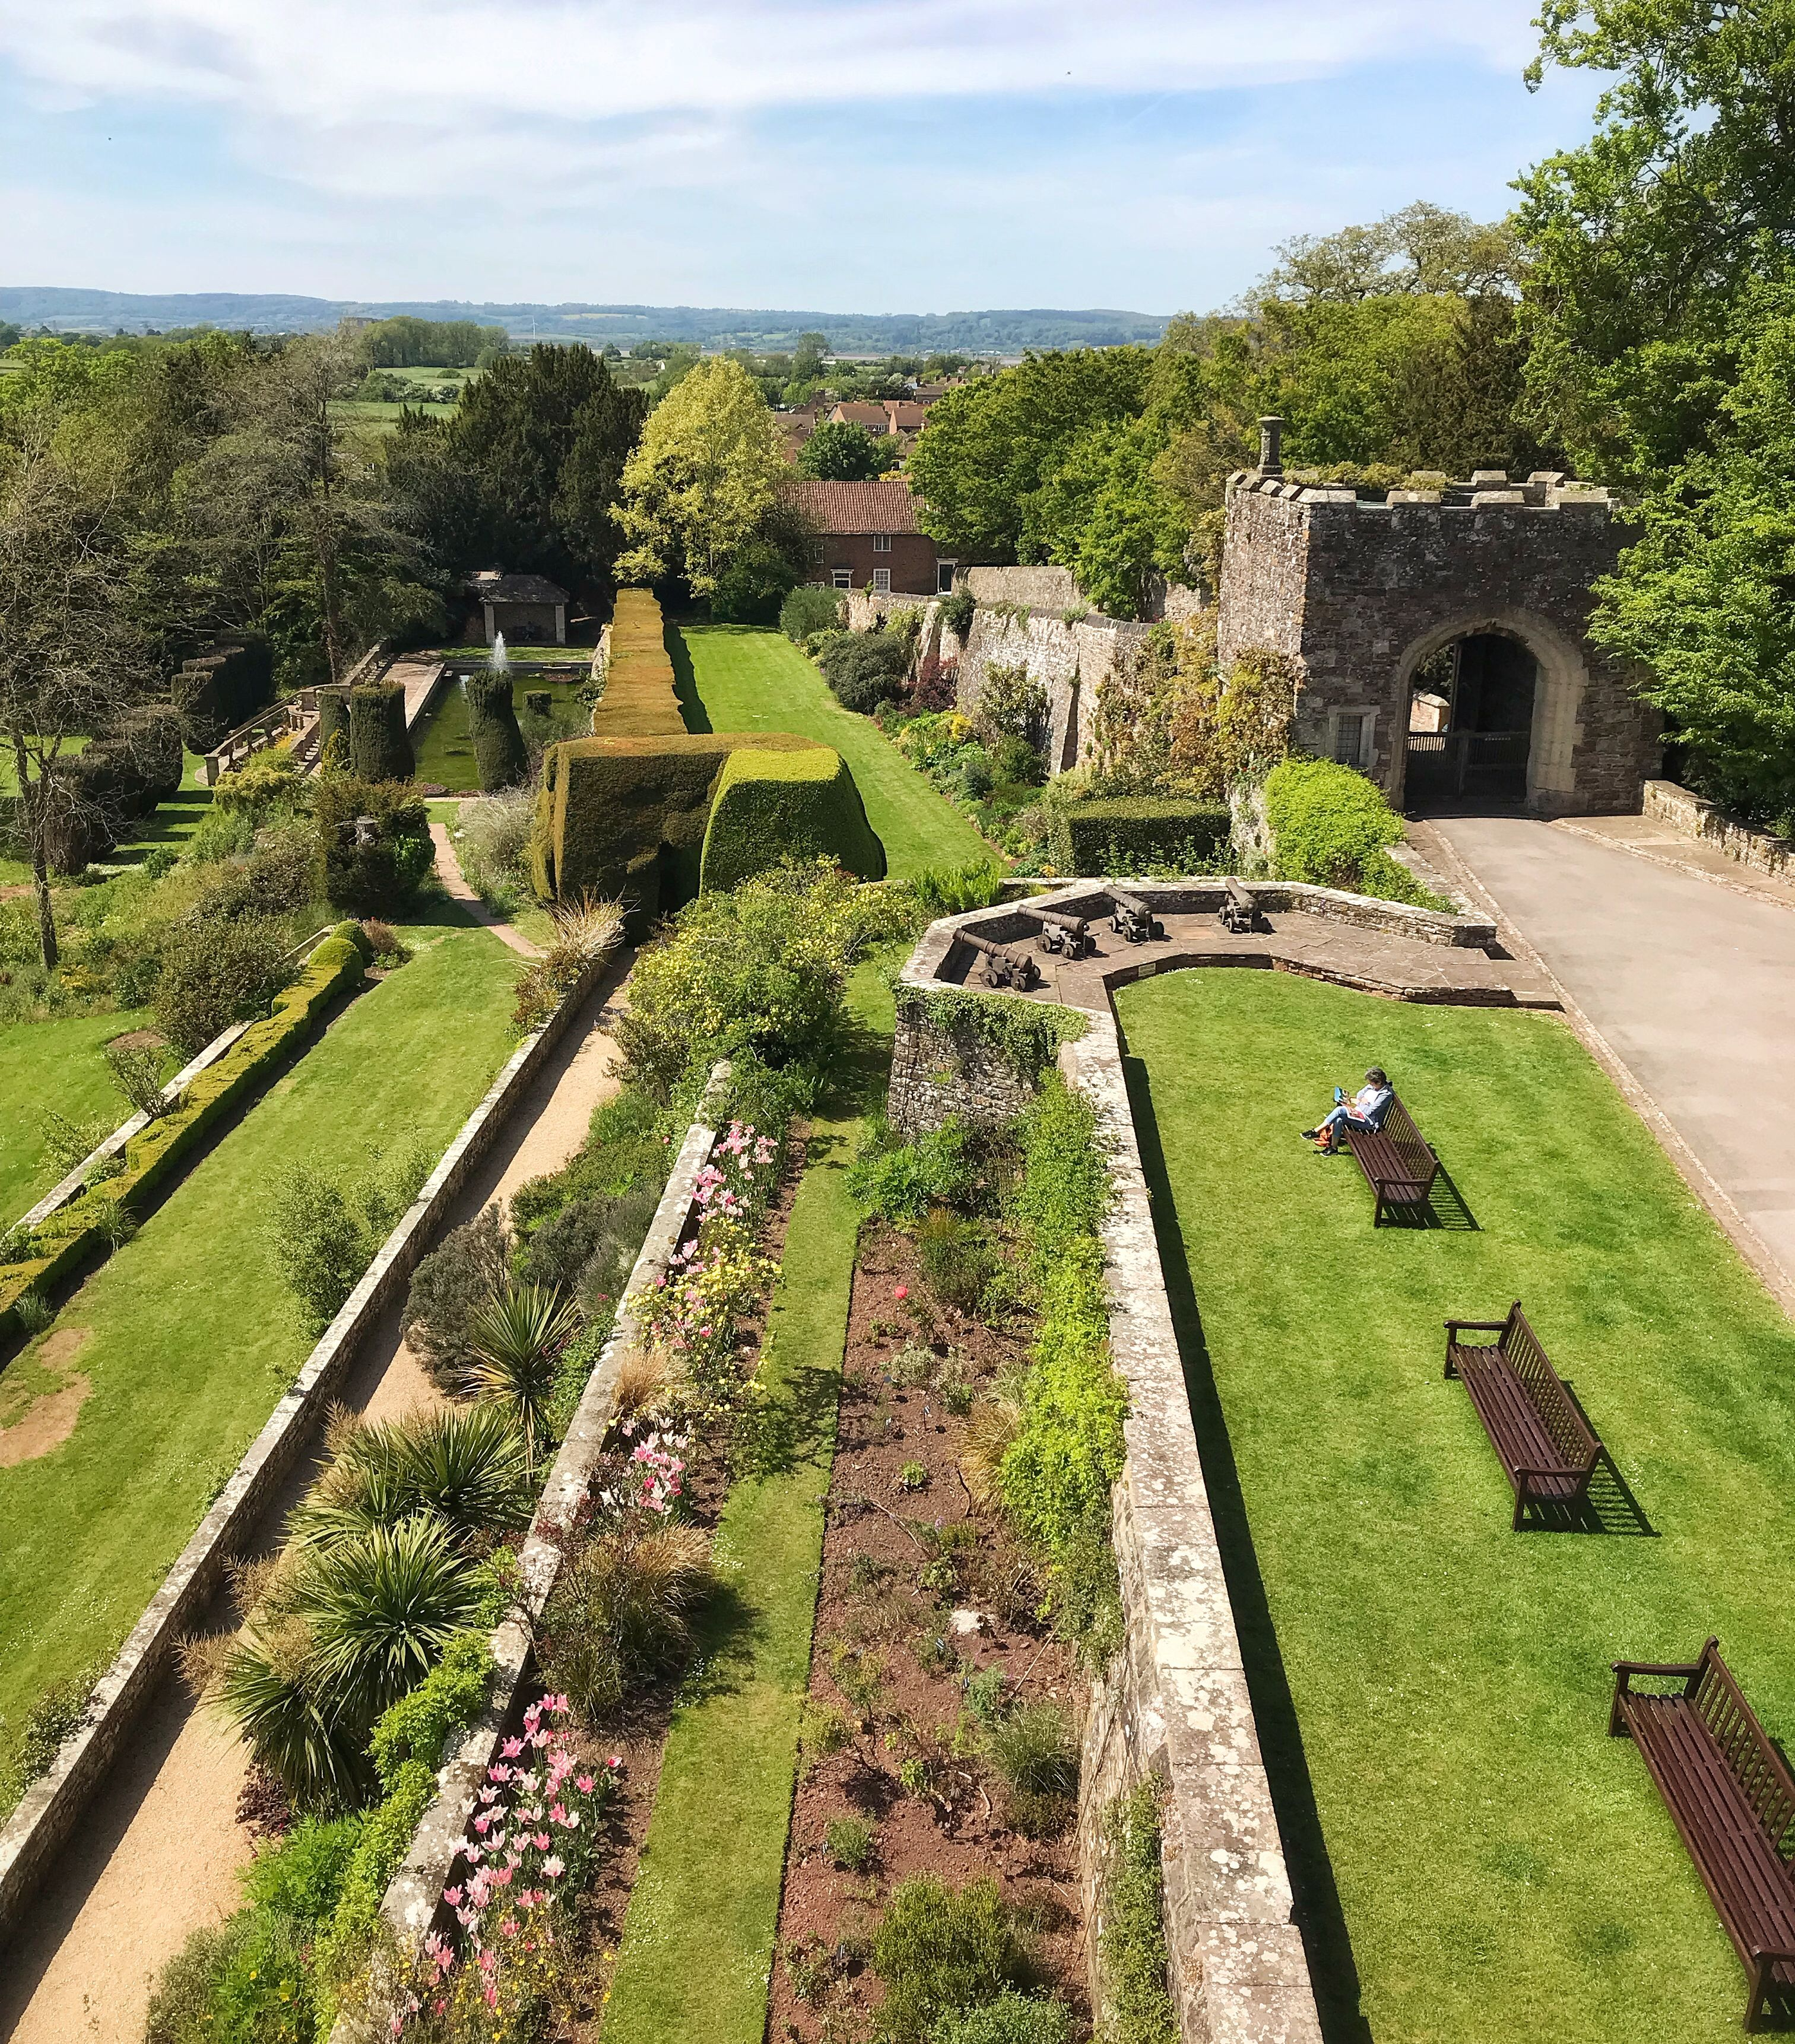 A stunning photo taken from the roof of the Castle showing ...